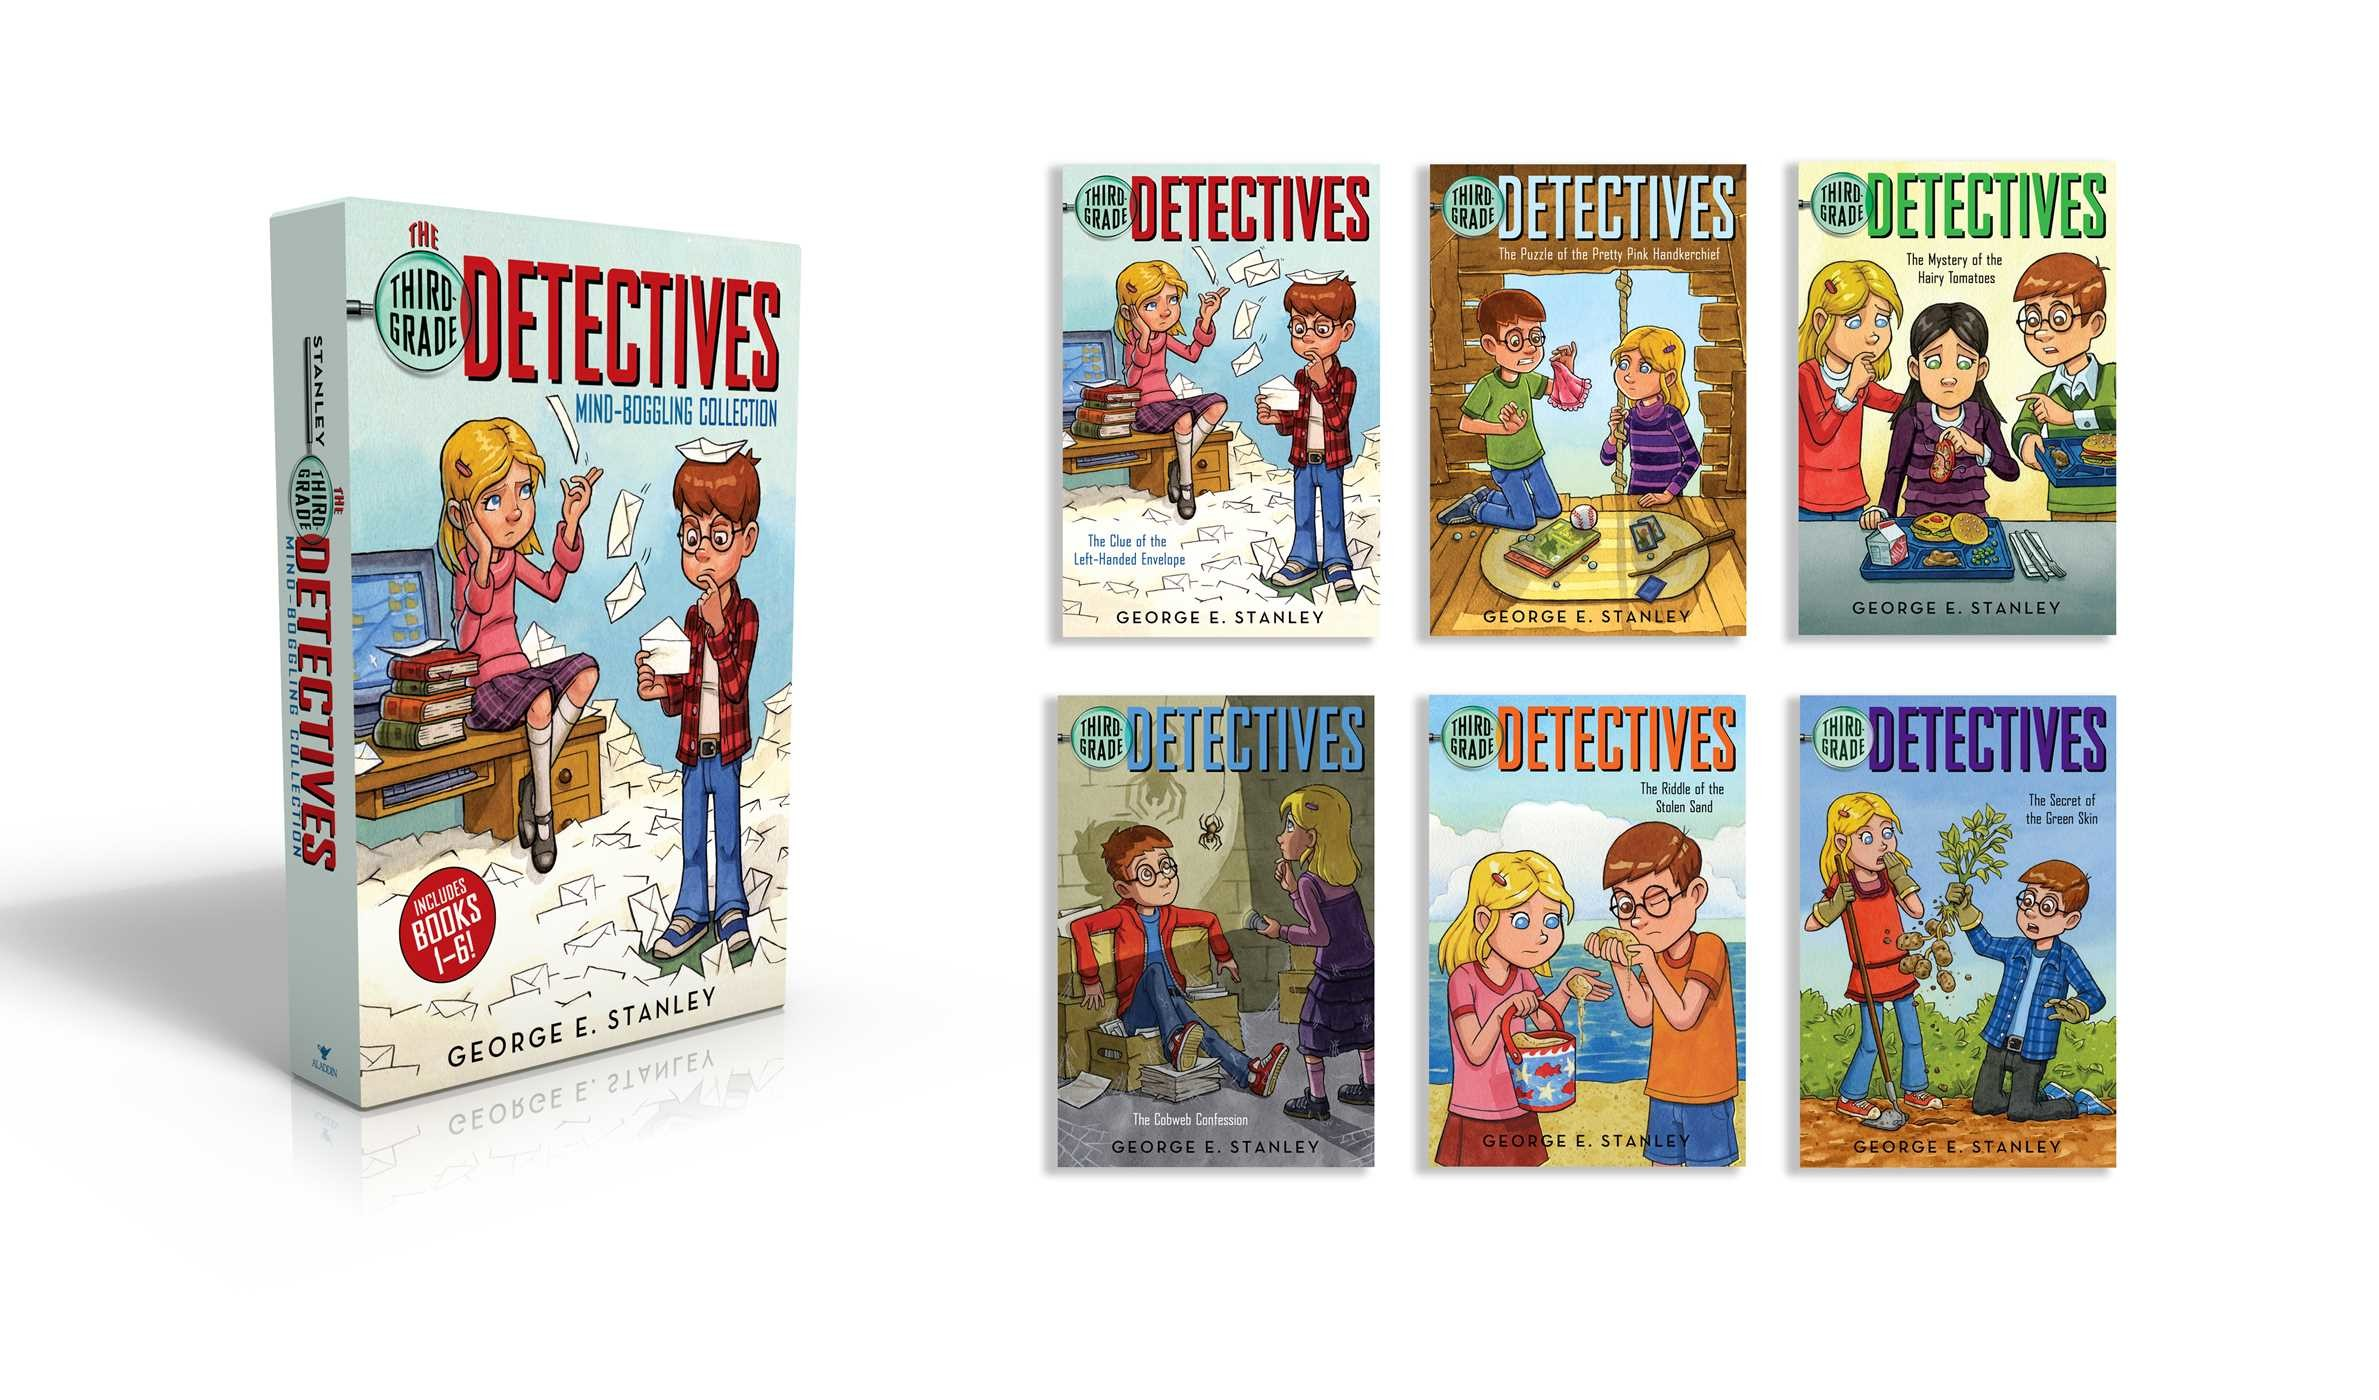 The third grade detectives mind boggling collection 9781481477390.in01